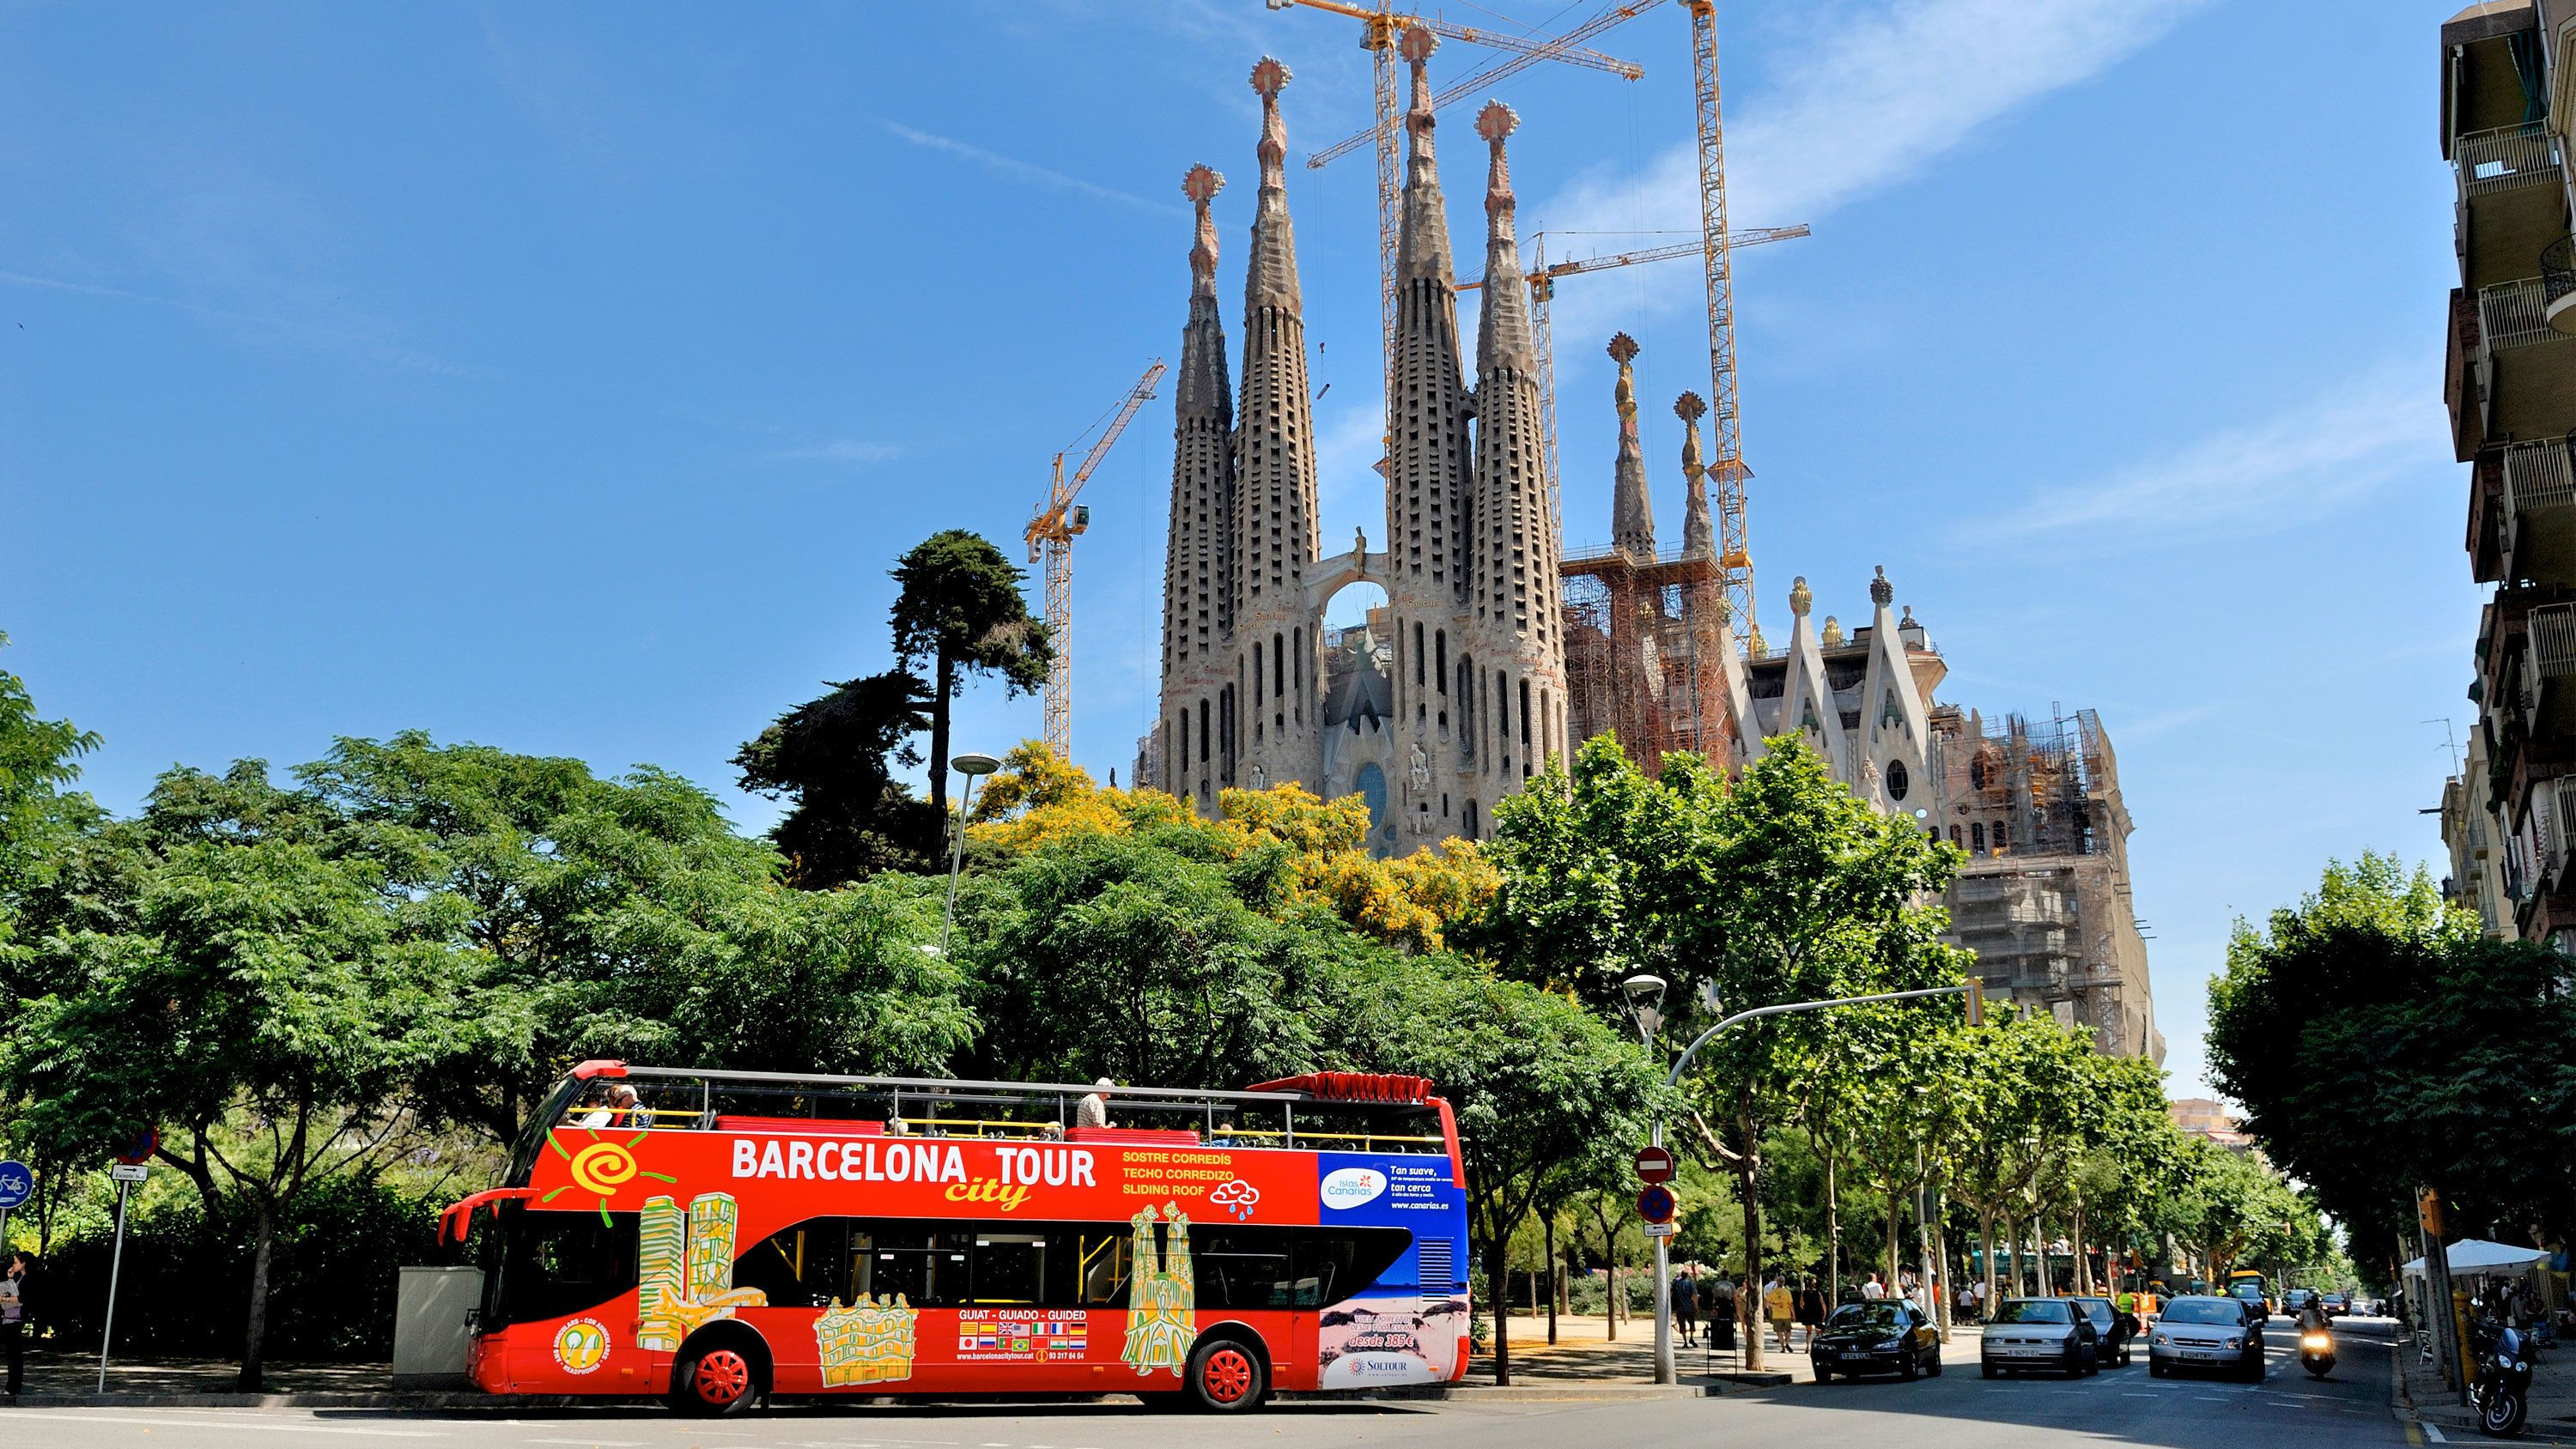 passengers on open air tour bus driving by Sagrada Fami?lia church in Barcelona